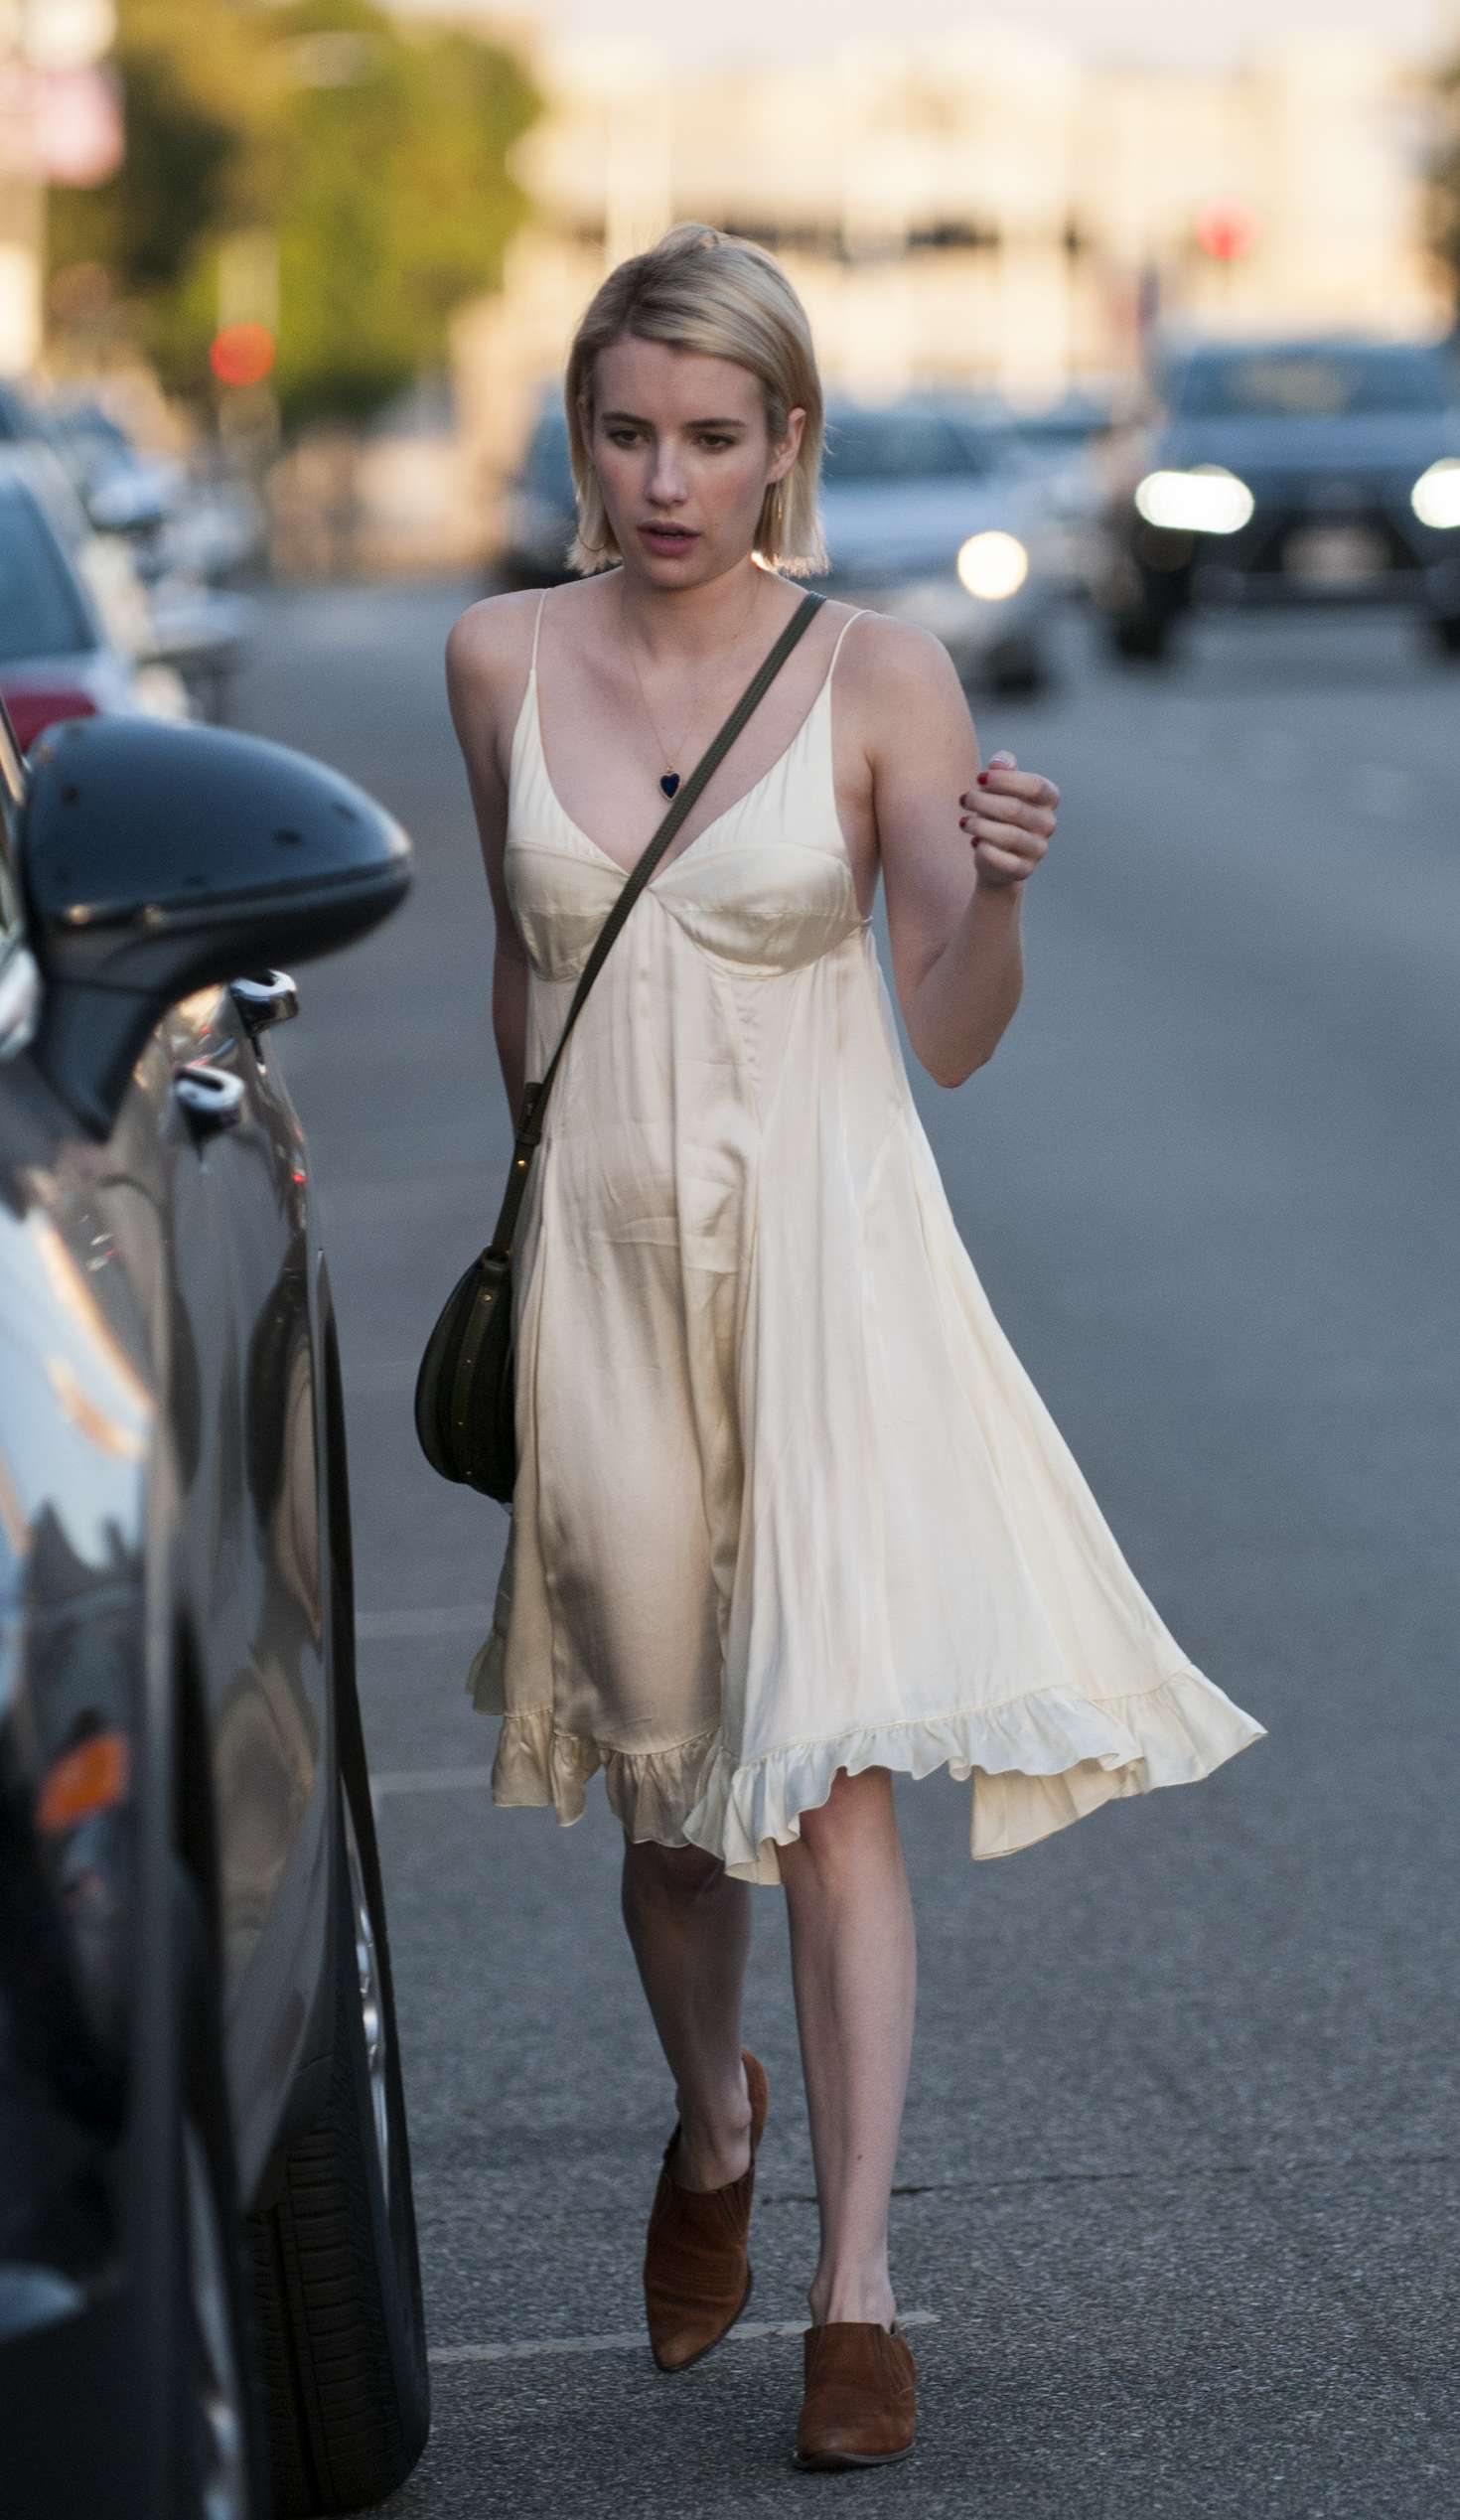 Emma Roberts in Dress out in LA